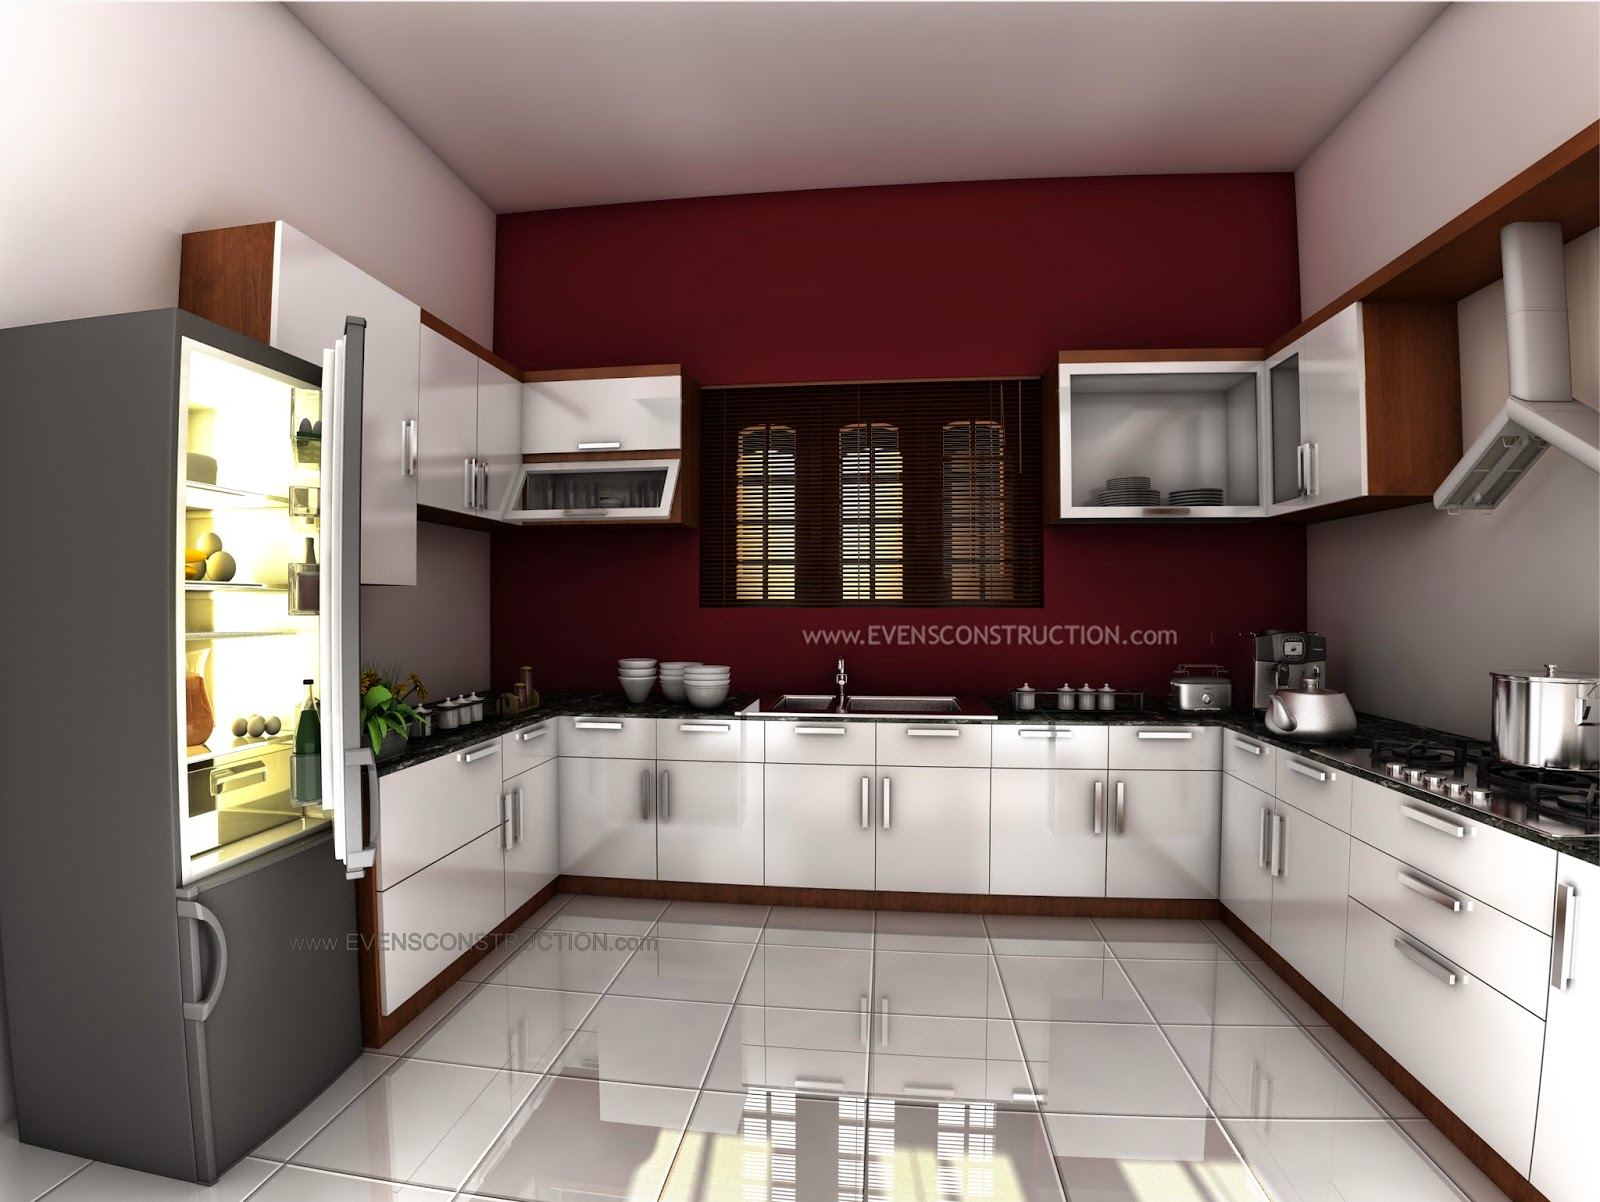 Evens construction pvt ltd beautiful kerala kitchen for Kitchen design kerala